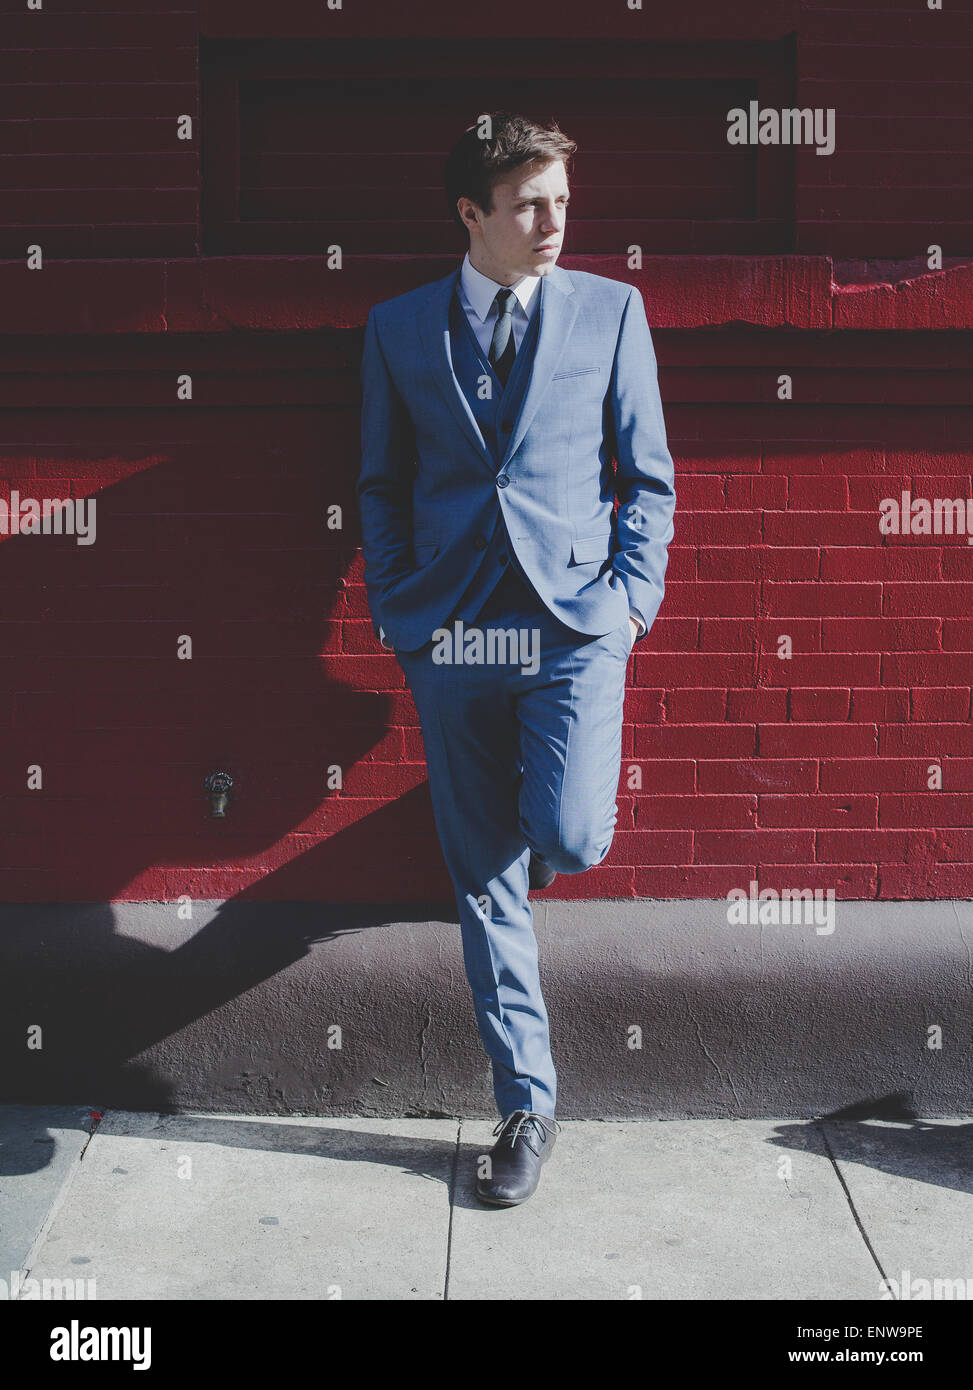 Male Fashion - Stock Image